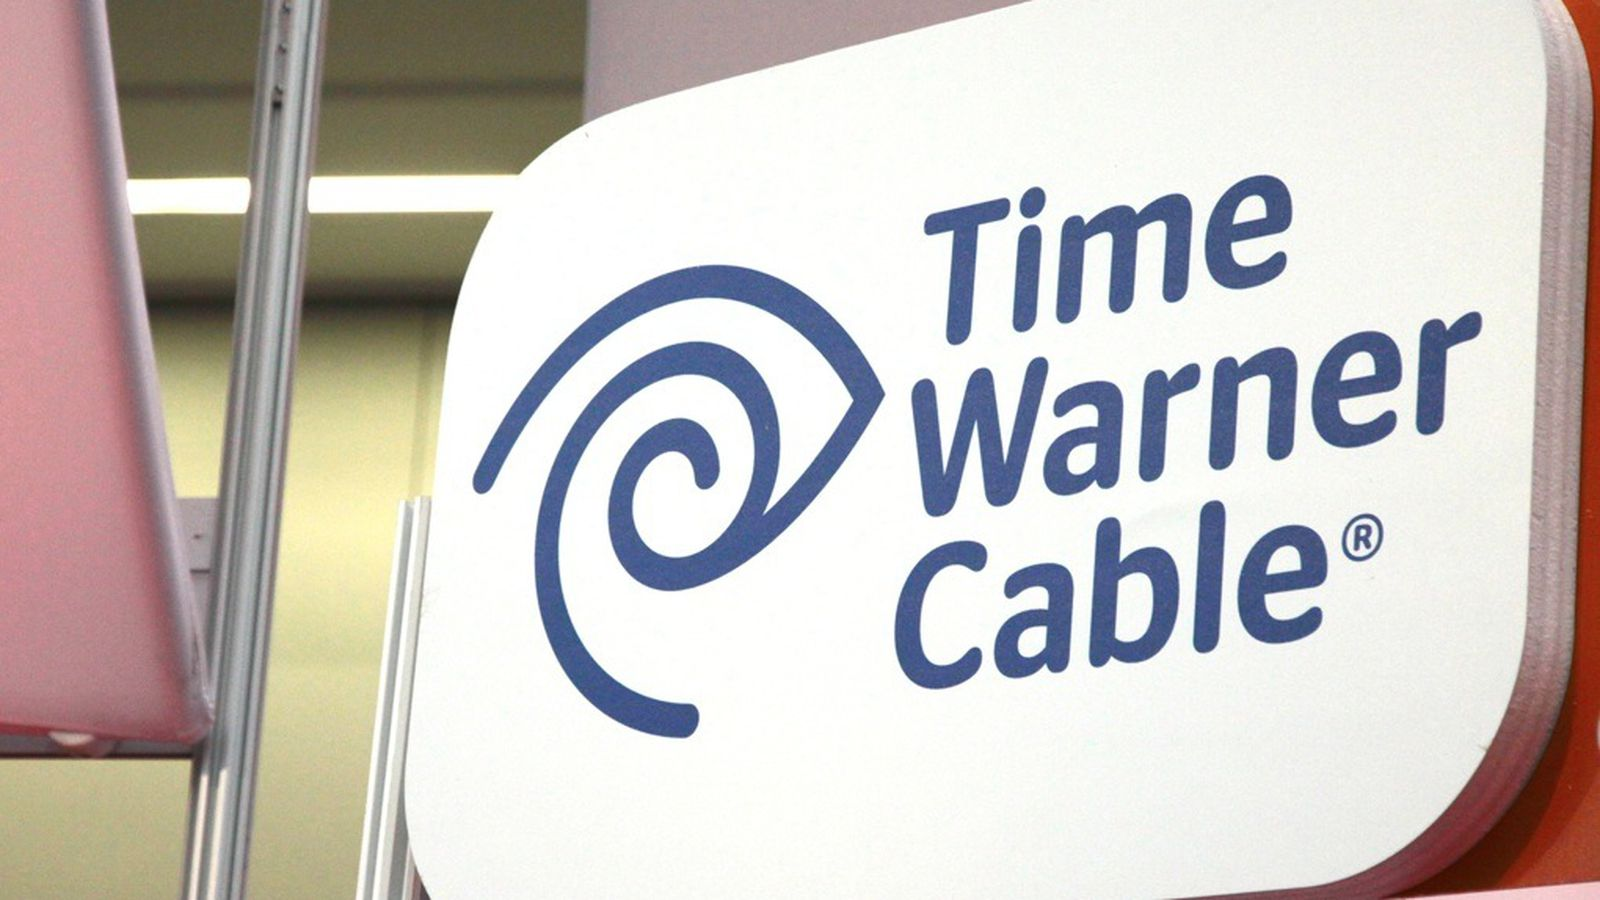 Time warner cable coupon hbo